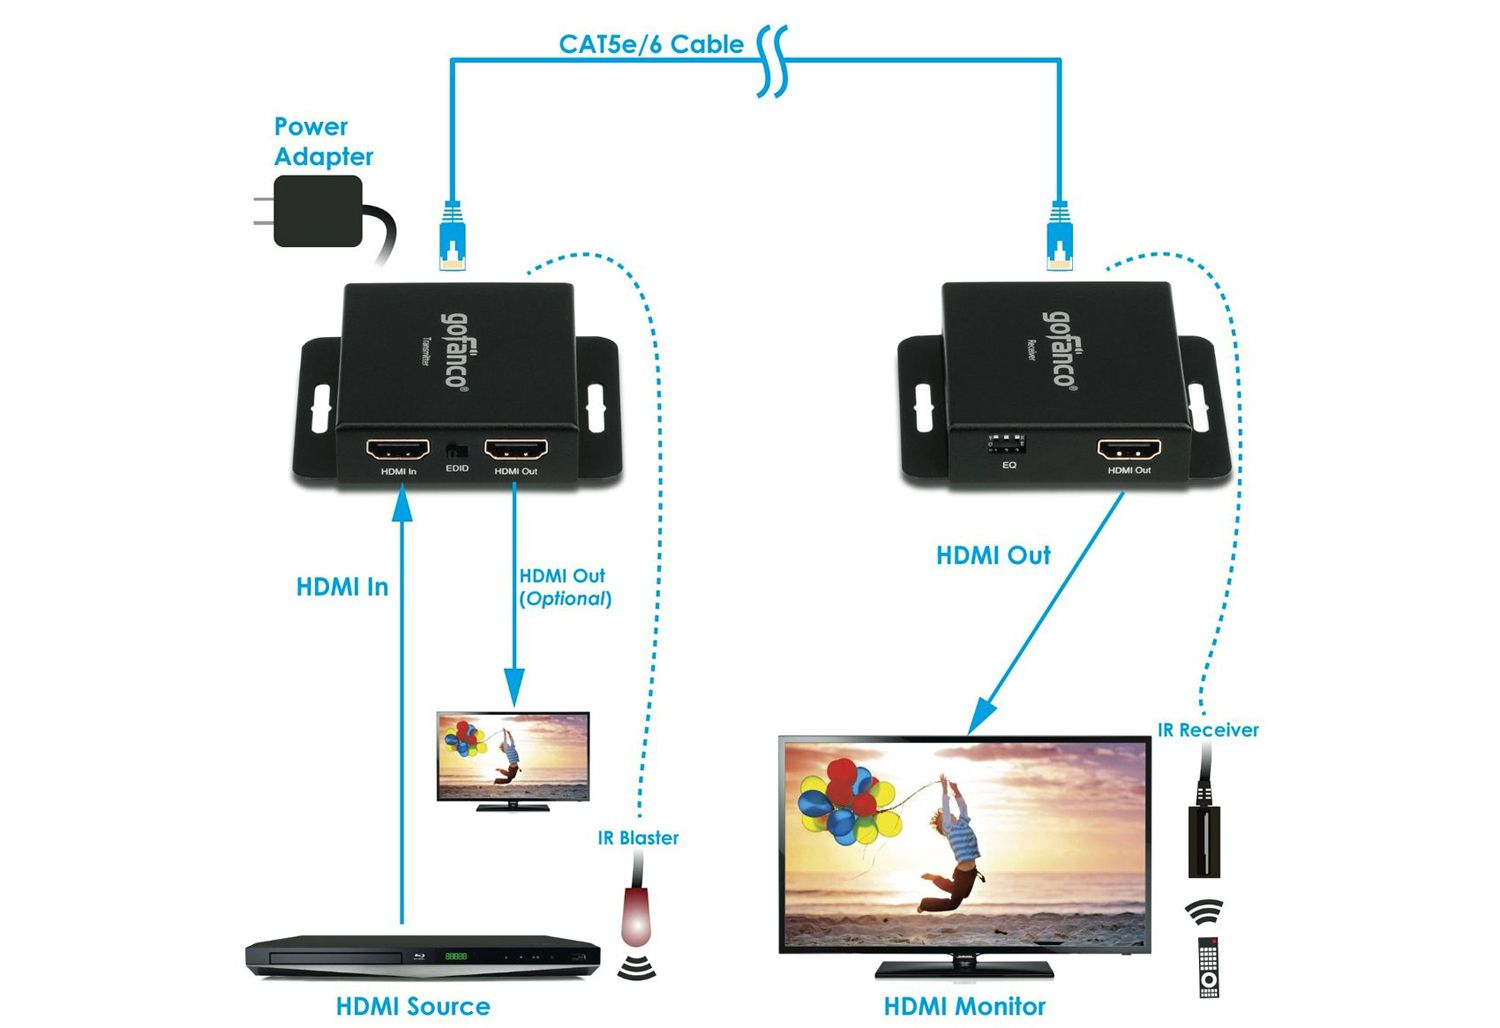 multiple receivers for satellite wiring diagram how to connect hdmi wired or wirelessly for long distances  how to connect hdmi wired or wirelessly for long distances